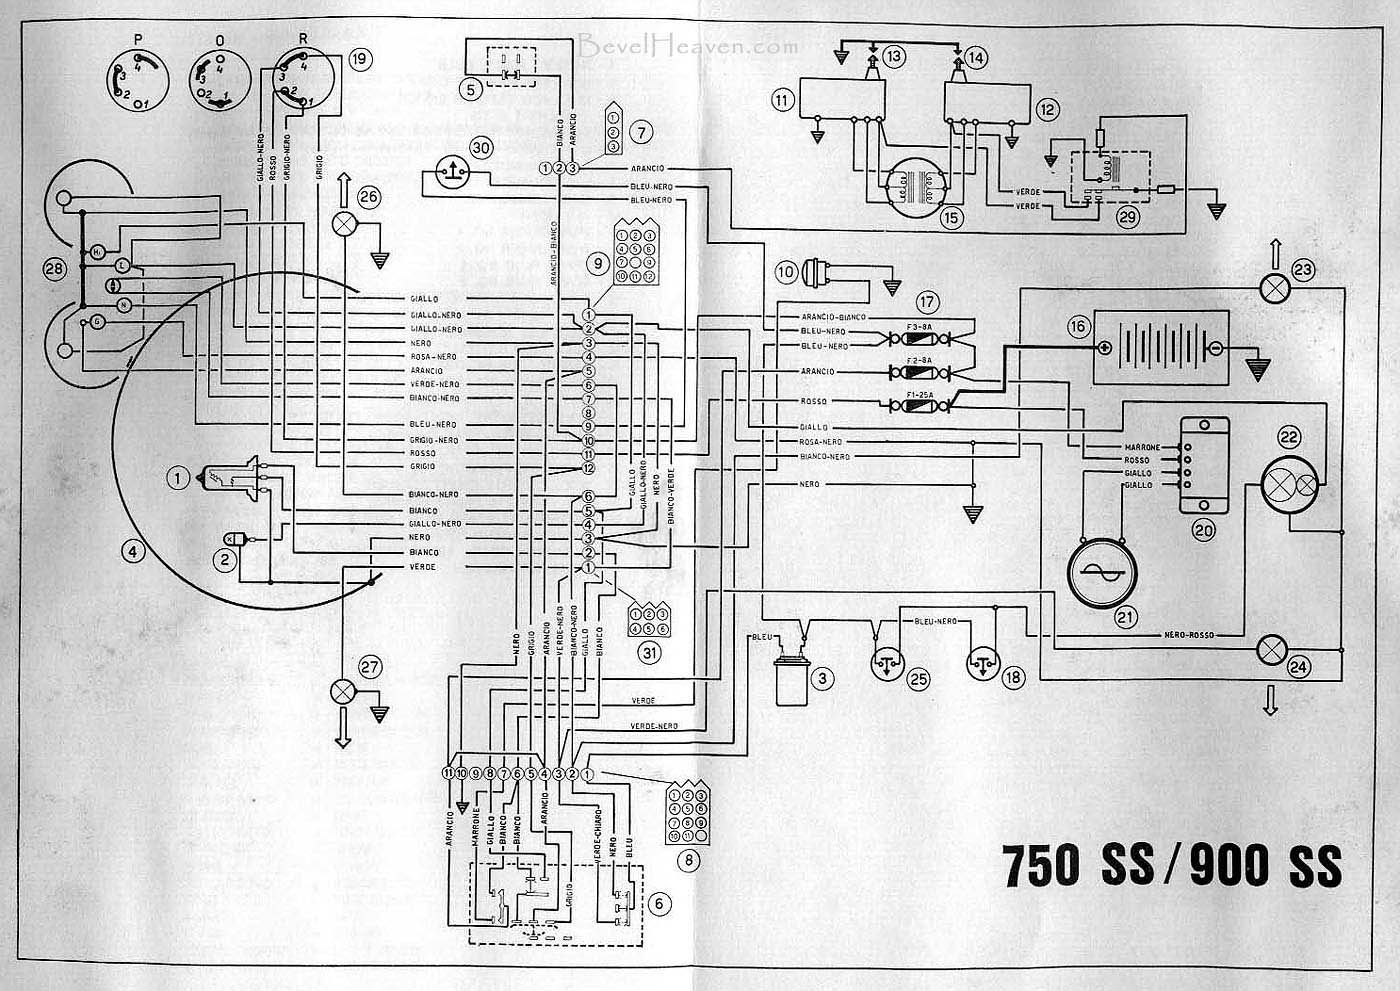 Kawasaki 750 Sxi Wiring Diagram Library Ducati Problems Ss Trusted Picture Of 1996 Jet Ski